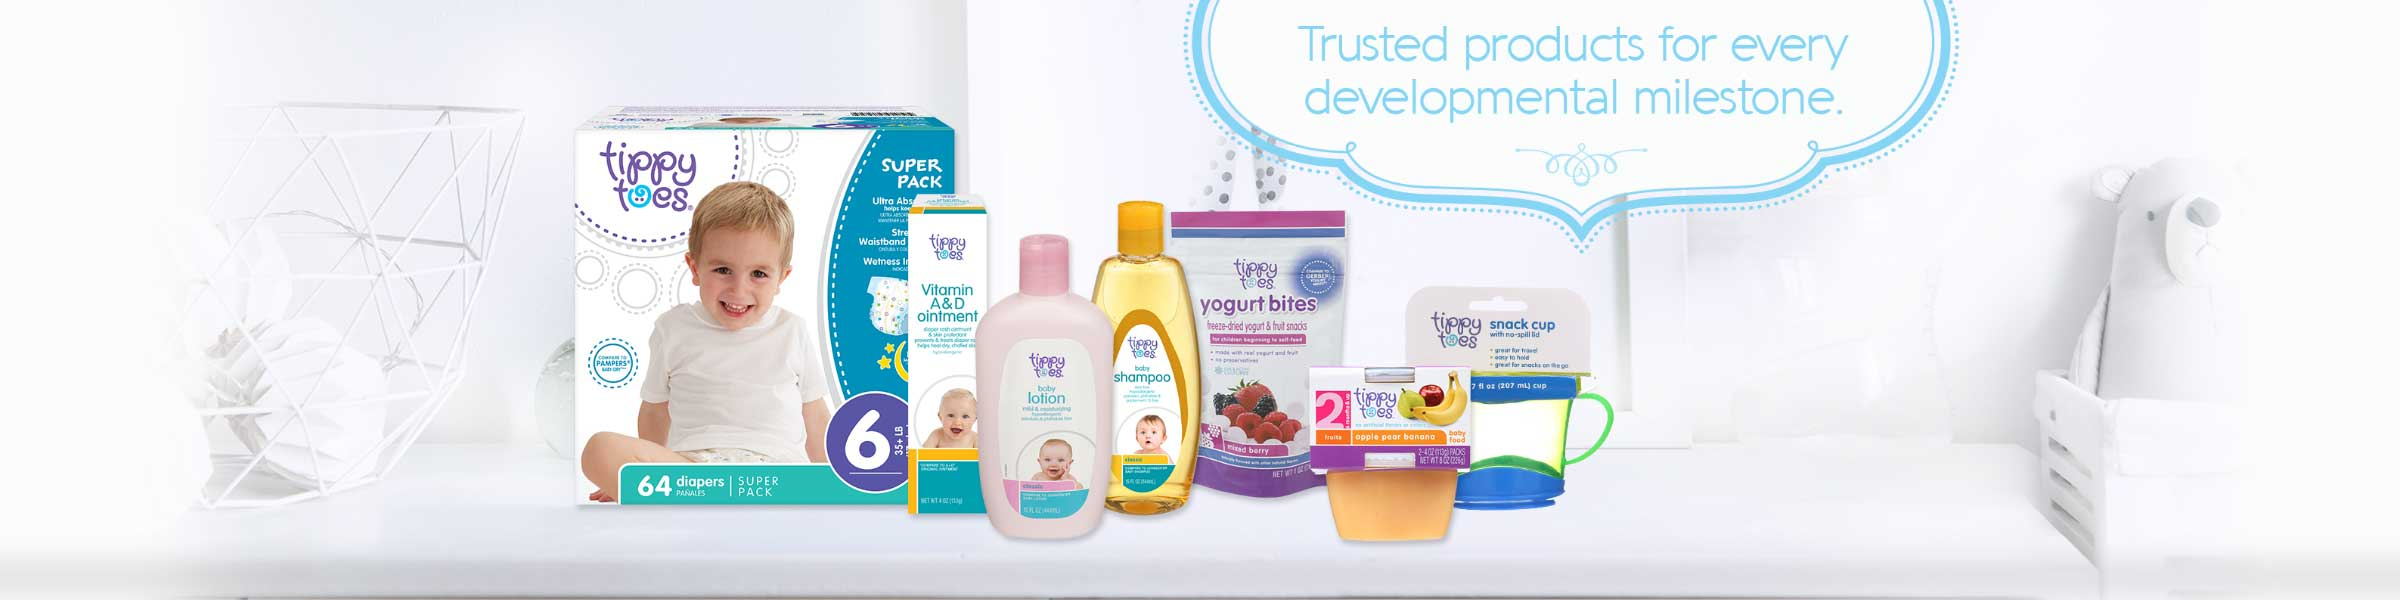 Trusted products for every developmental milestone.